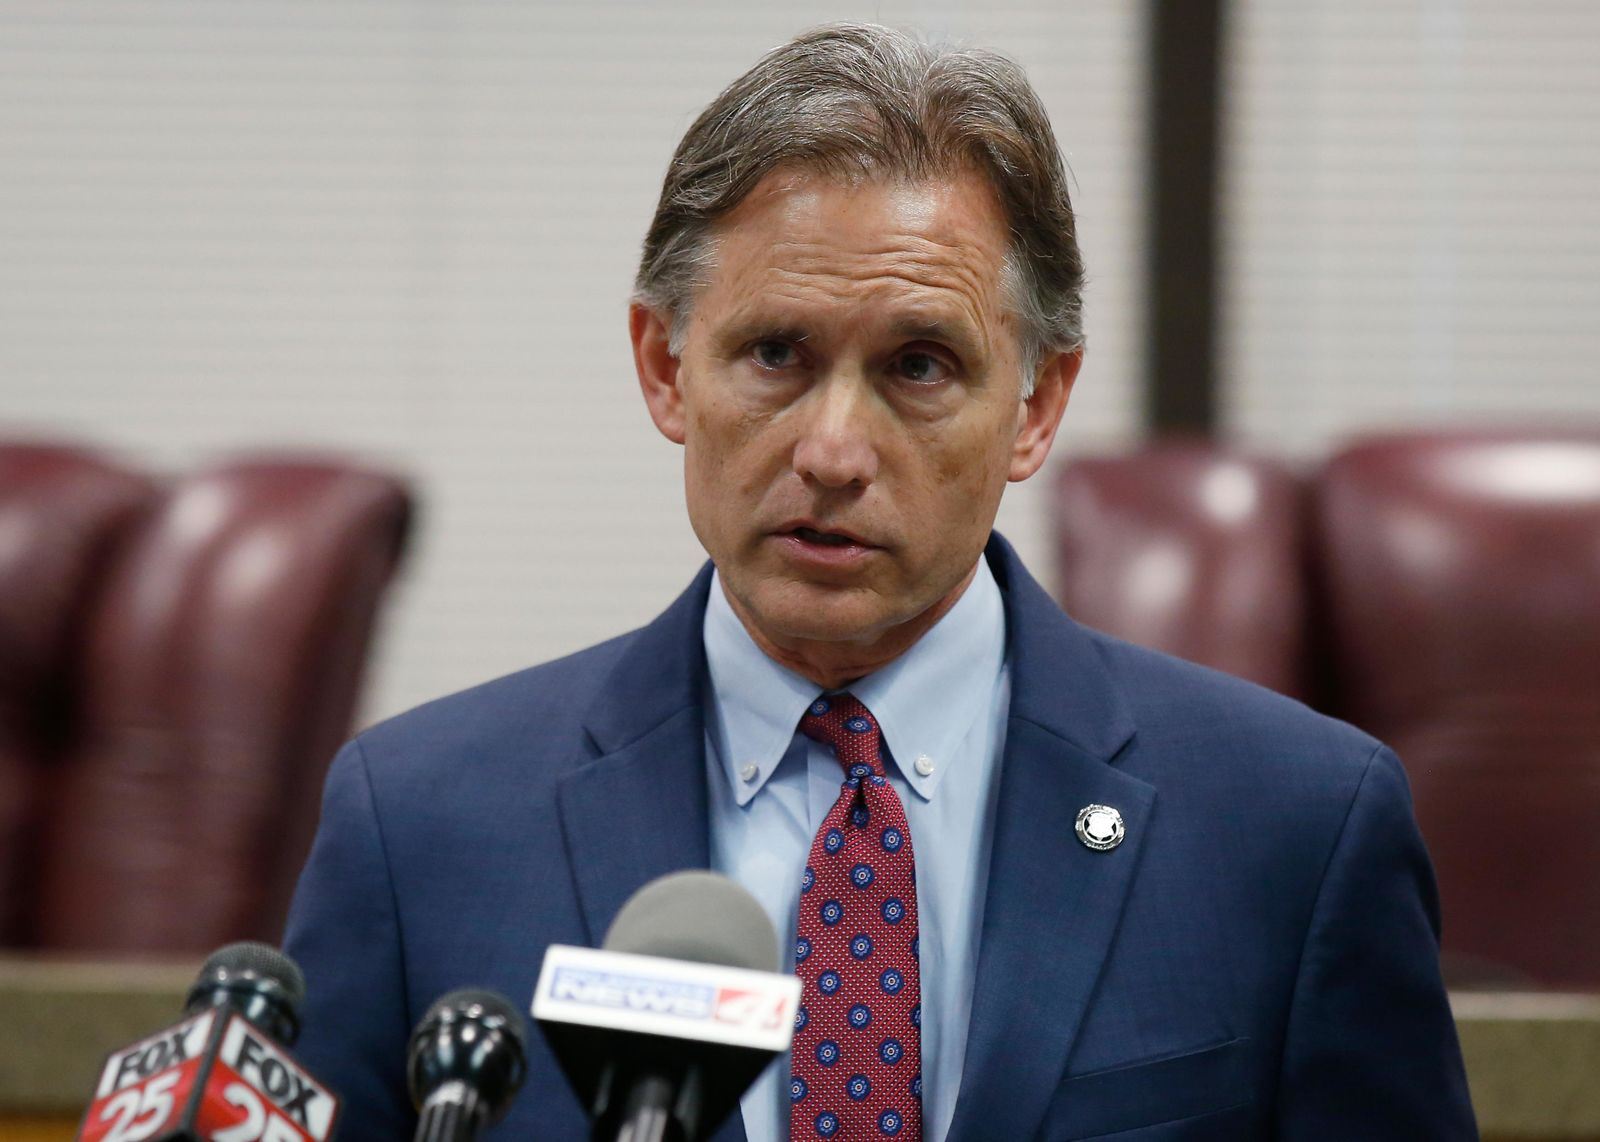 Oklahoma Attorney General Mike Hunter speaks to the media at a news conference following closing arguments in Oklahoma's ongoing opioid drug lawsuit against Johnson & Johnson Monday, July 15, 2019, in Norman, Okla. (AP Photo/Sue Ogrocki)